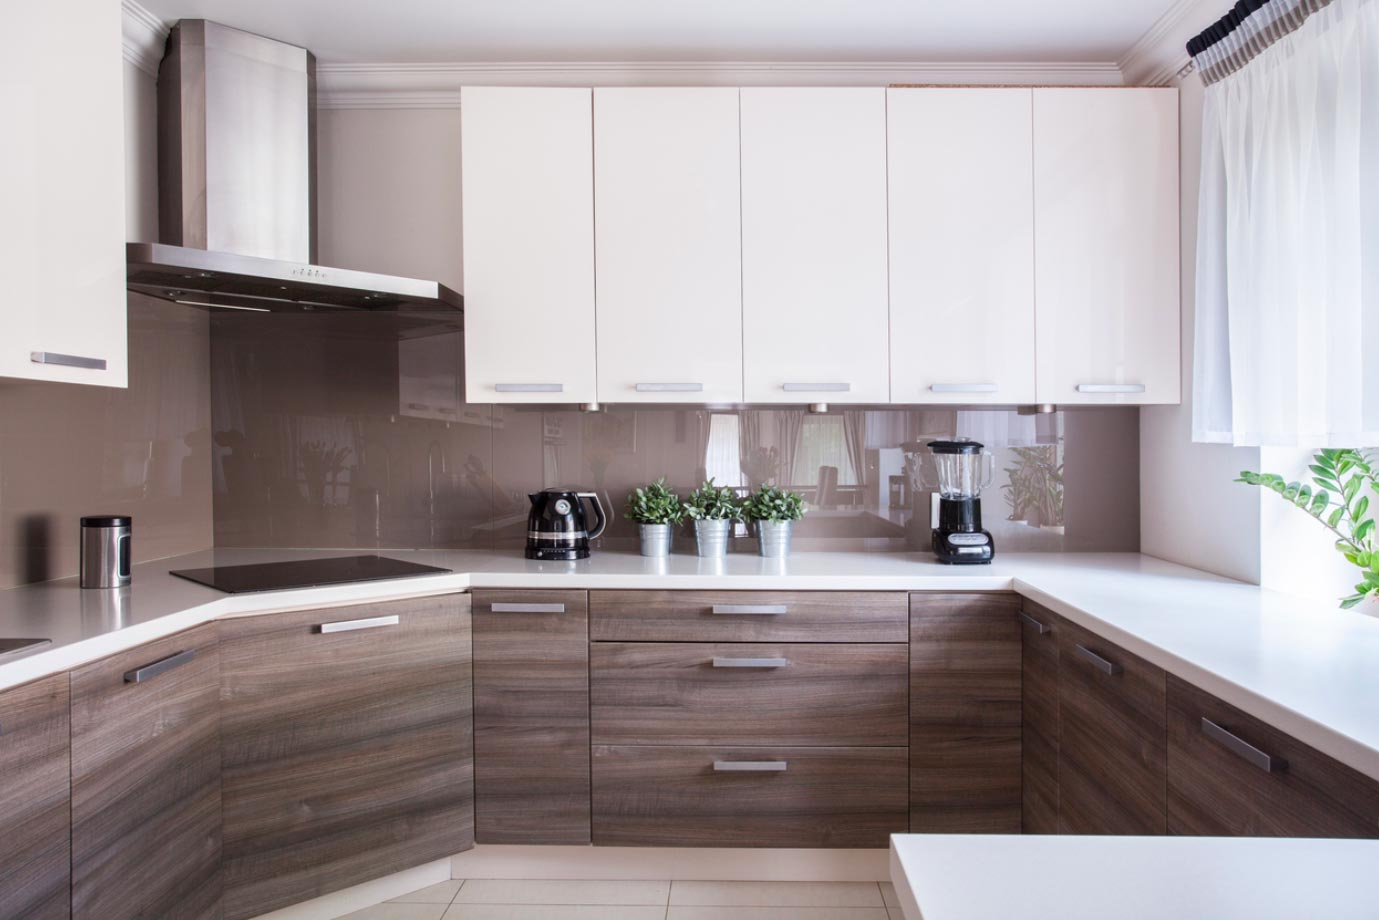 A small, modern kitchen with slab-style thermofoil cabinets.